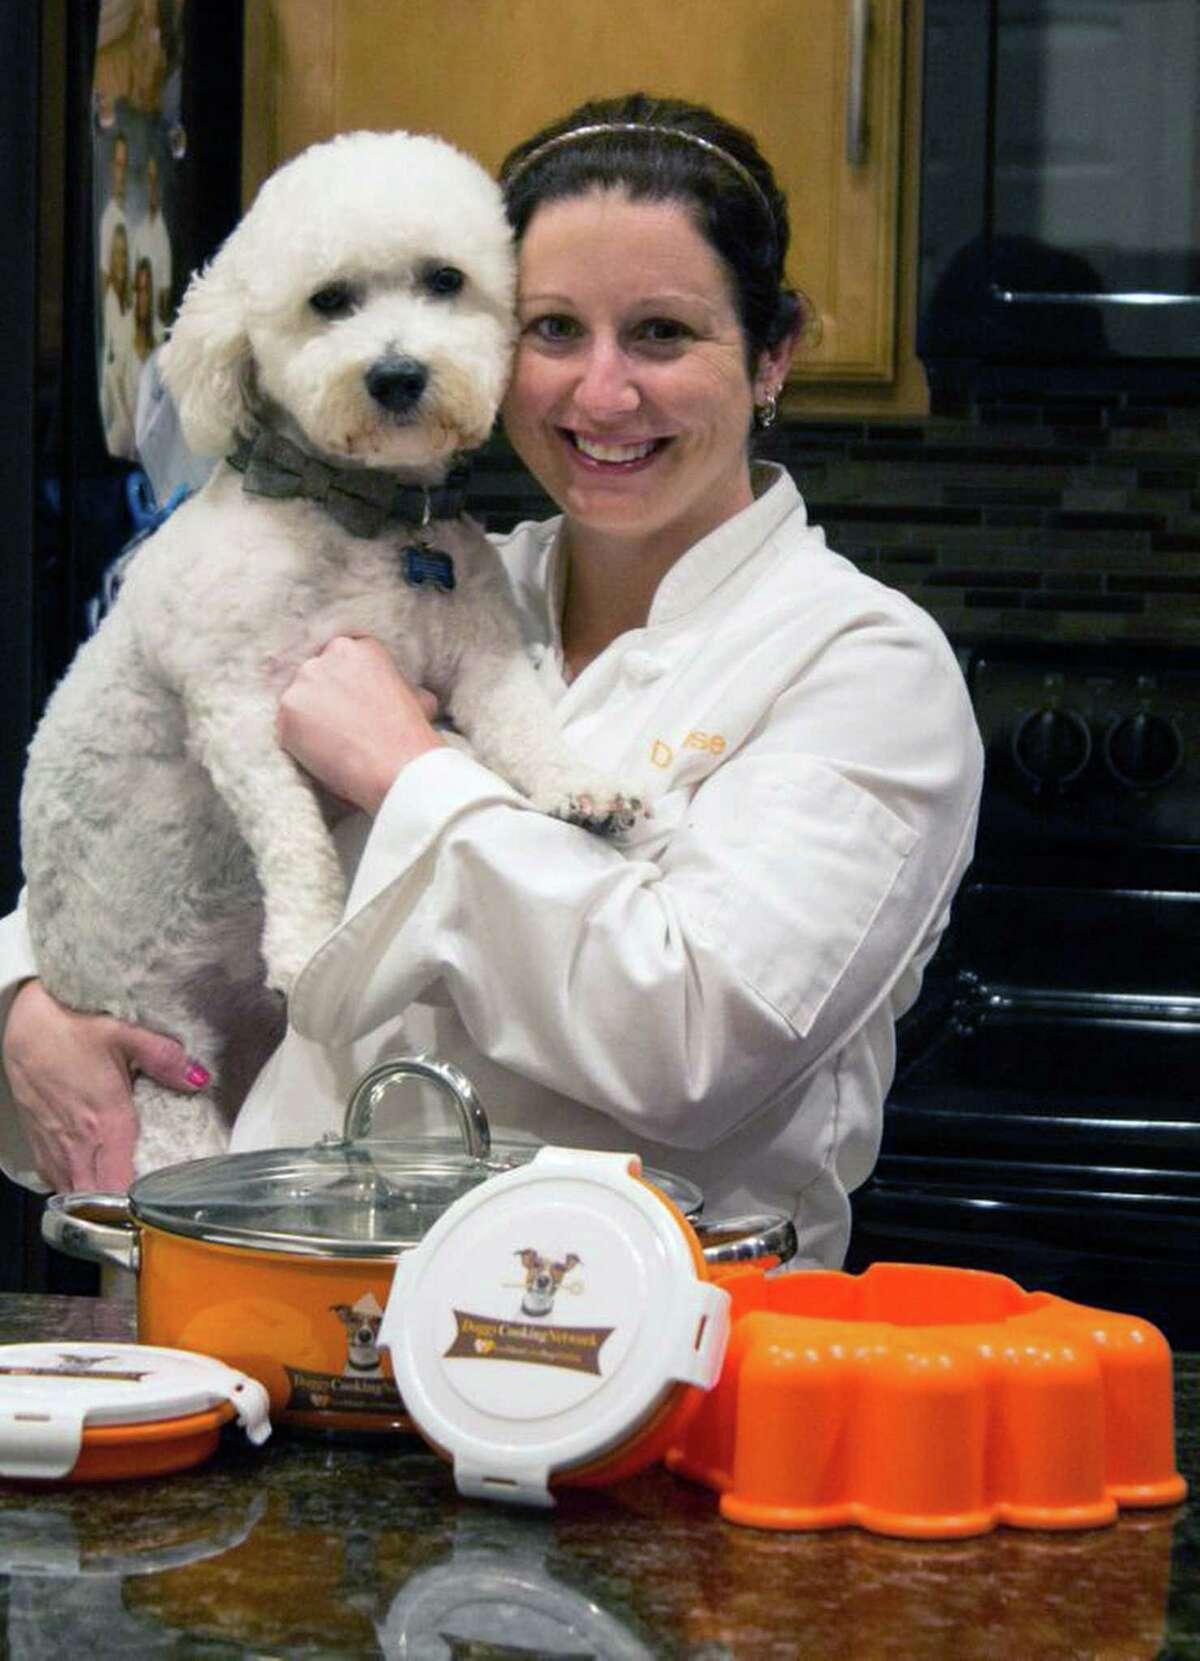 Denise Fernandez poses for a photo at the Safety Harbor, Fla., home she shares with Kris Rotondo and four dogs, including Kobe, pictured with her. The orange Pup Pot system, on the counter, is designed for cooking for the dogs and will be featured on the couple's Doggy Cooking Network on YouTube.